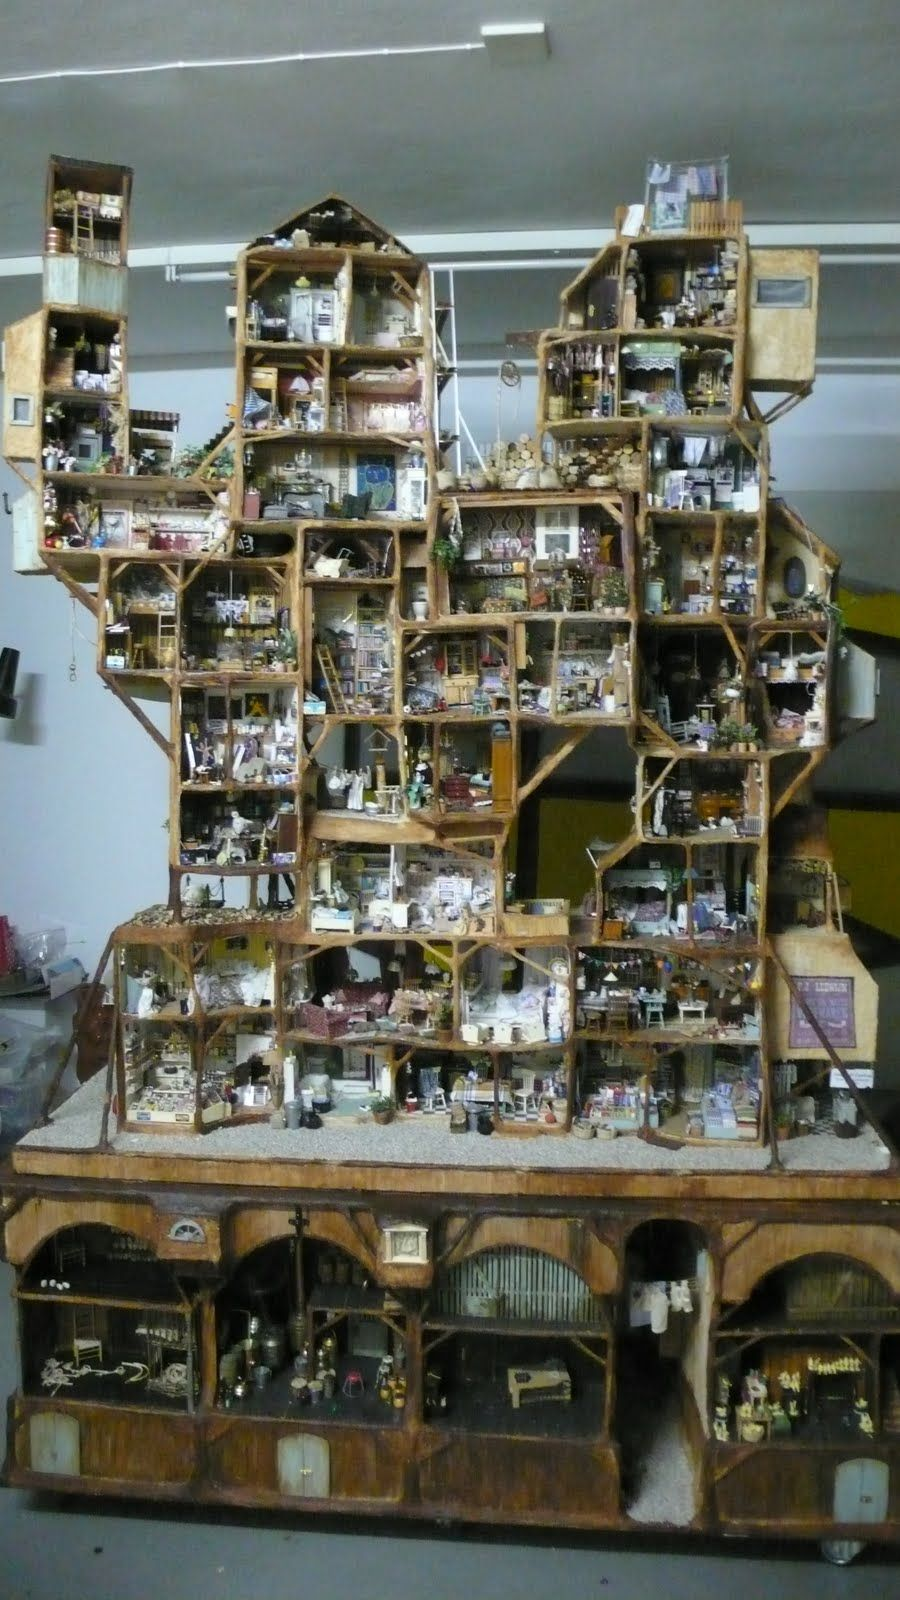 The Mouse House, crazy cool!